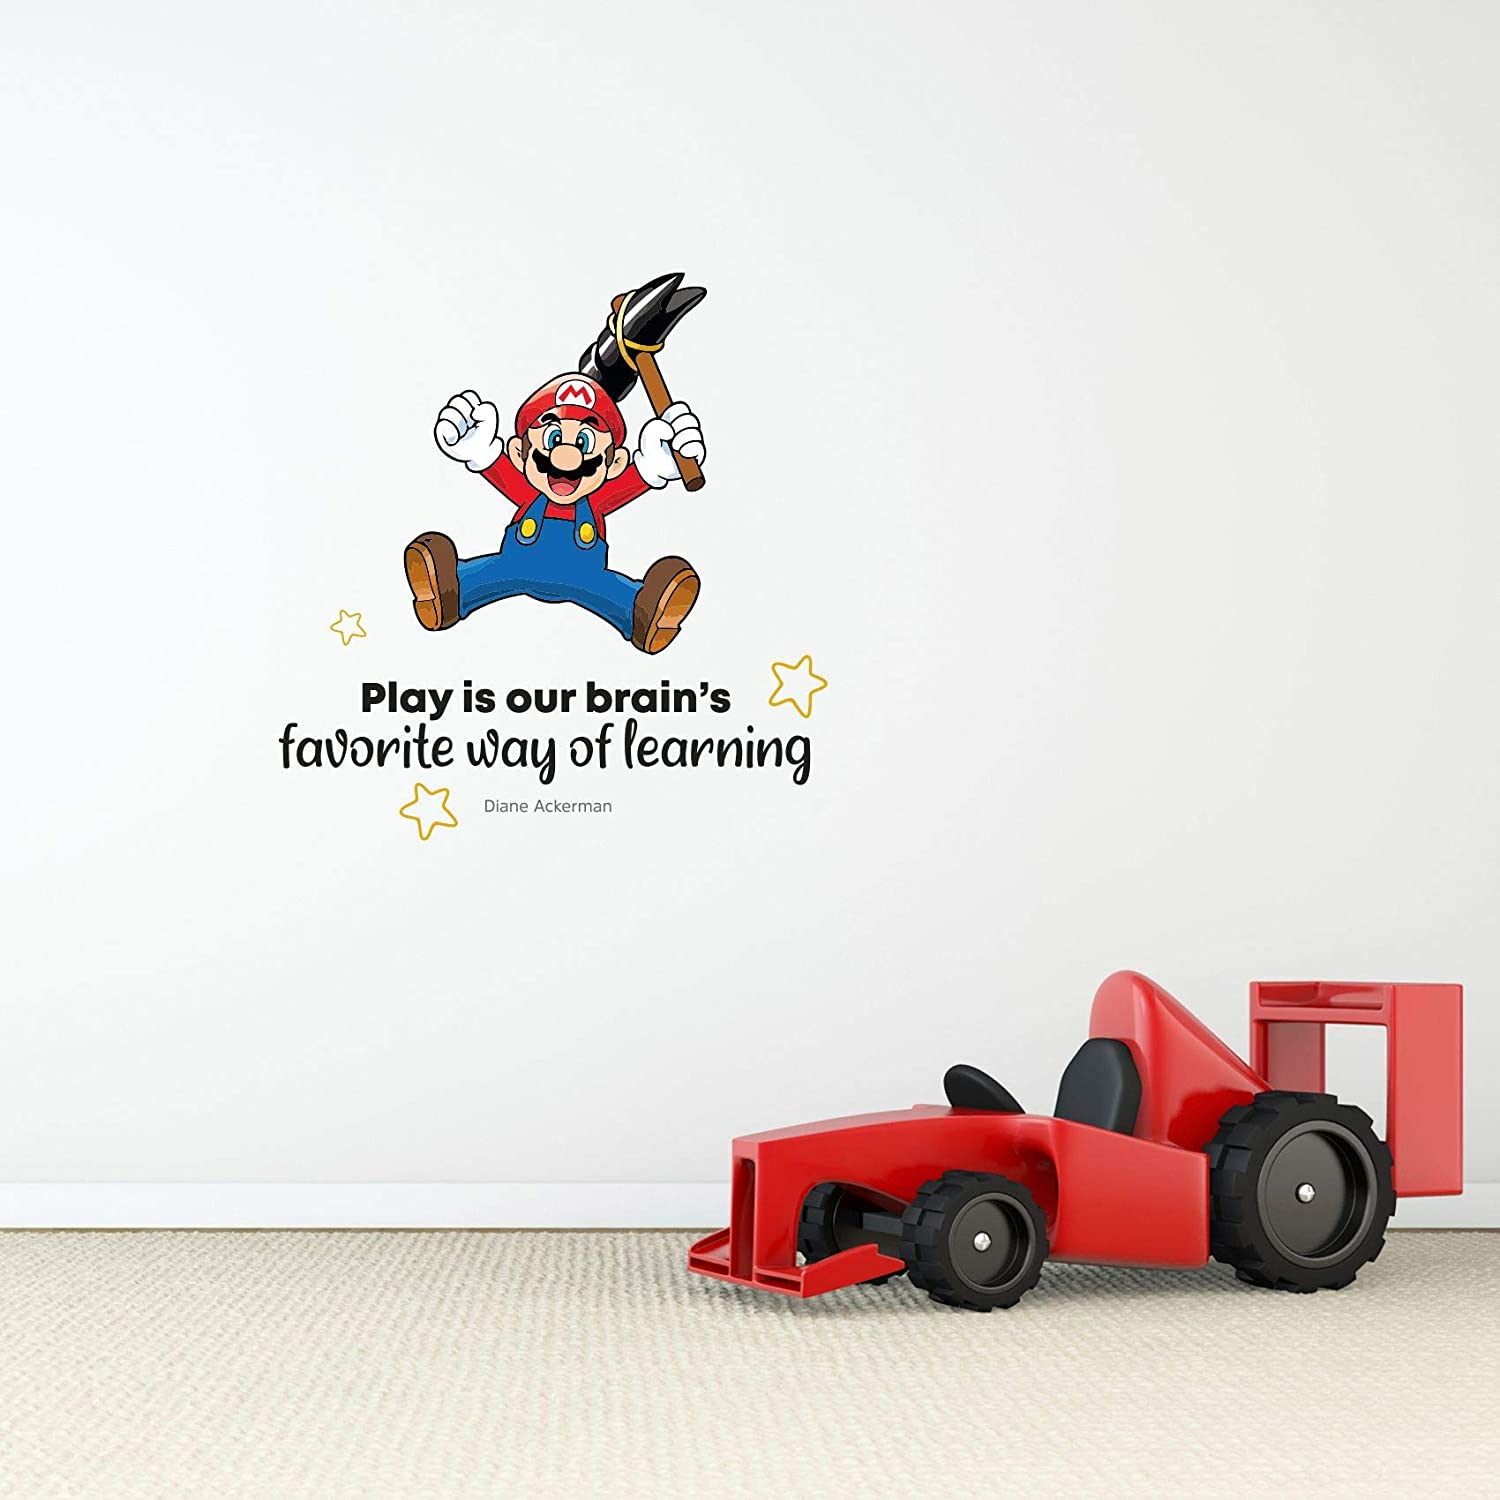 Amazon Com Learning Super Mario Life Quote Cartoon Quotes Decors Wall Sticker Art Design Decal For Girls Boys Kids Room Bedroom Nursery Kindergarten Home Decor Stickers Wall Art Vinyl Decoration 40x40 Inch Home